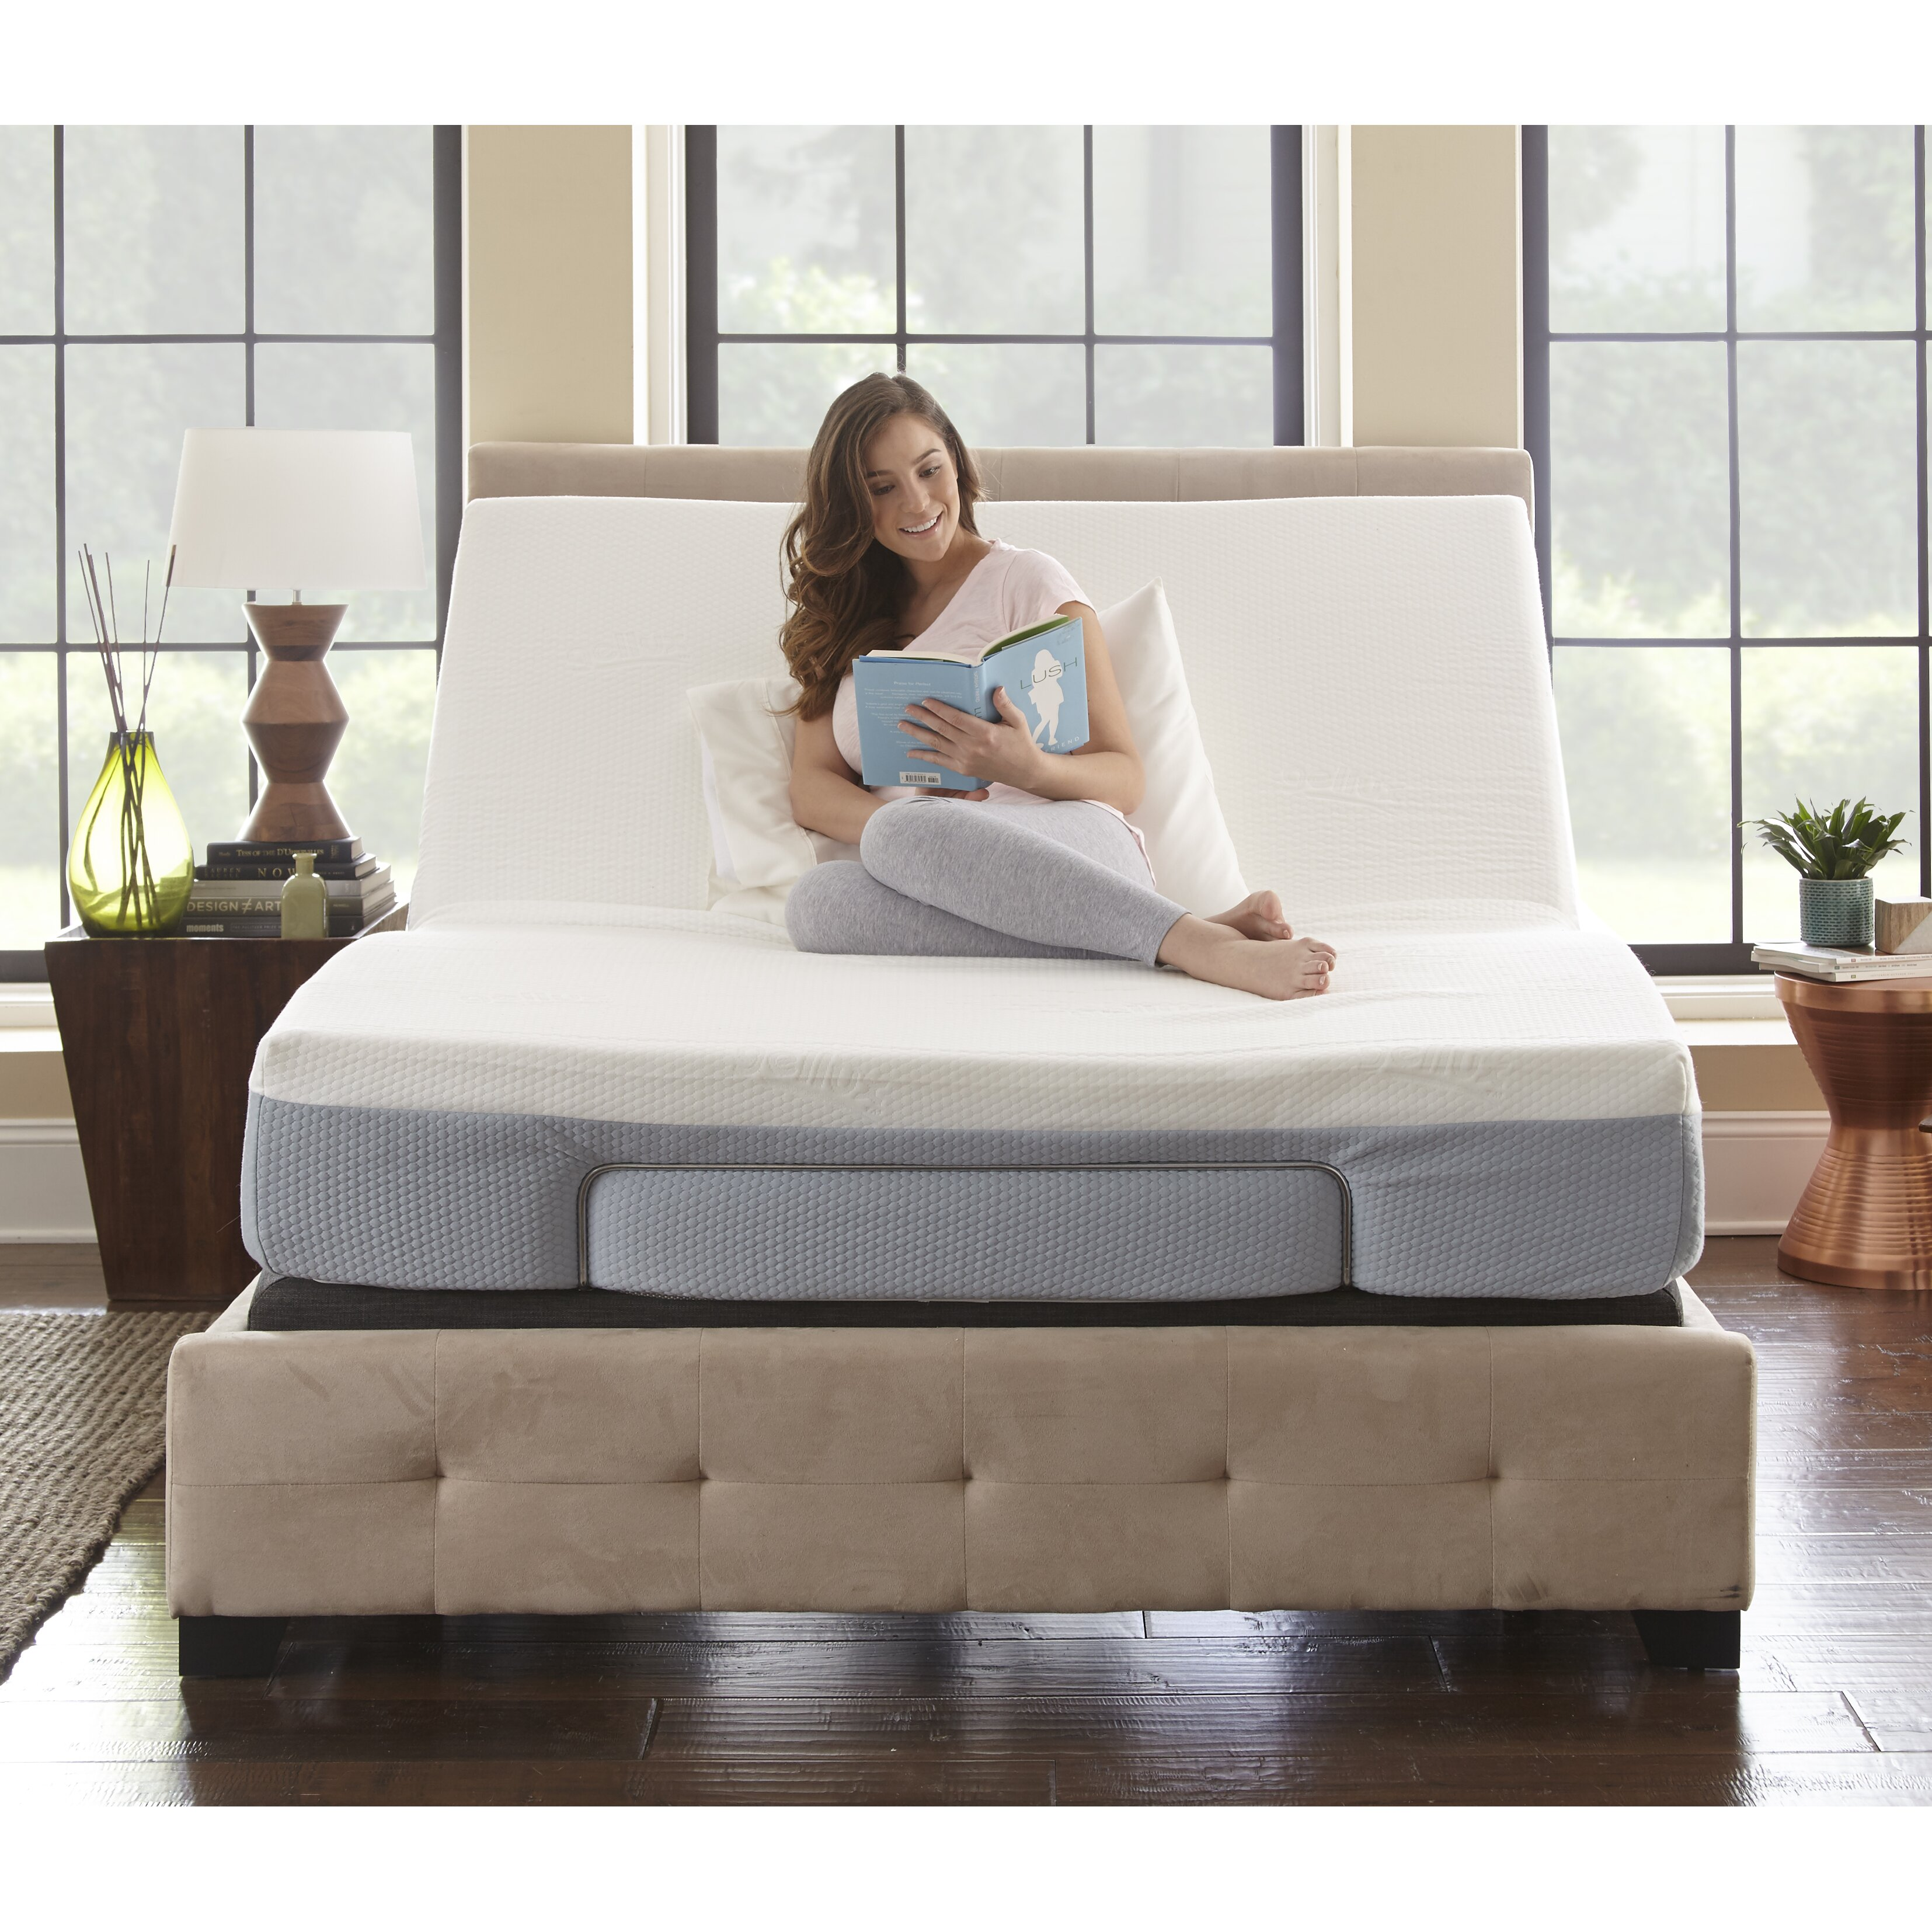 Eco Lux Power Adjustable Bed Base With Remote Control